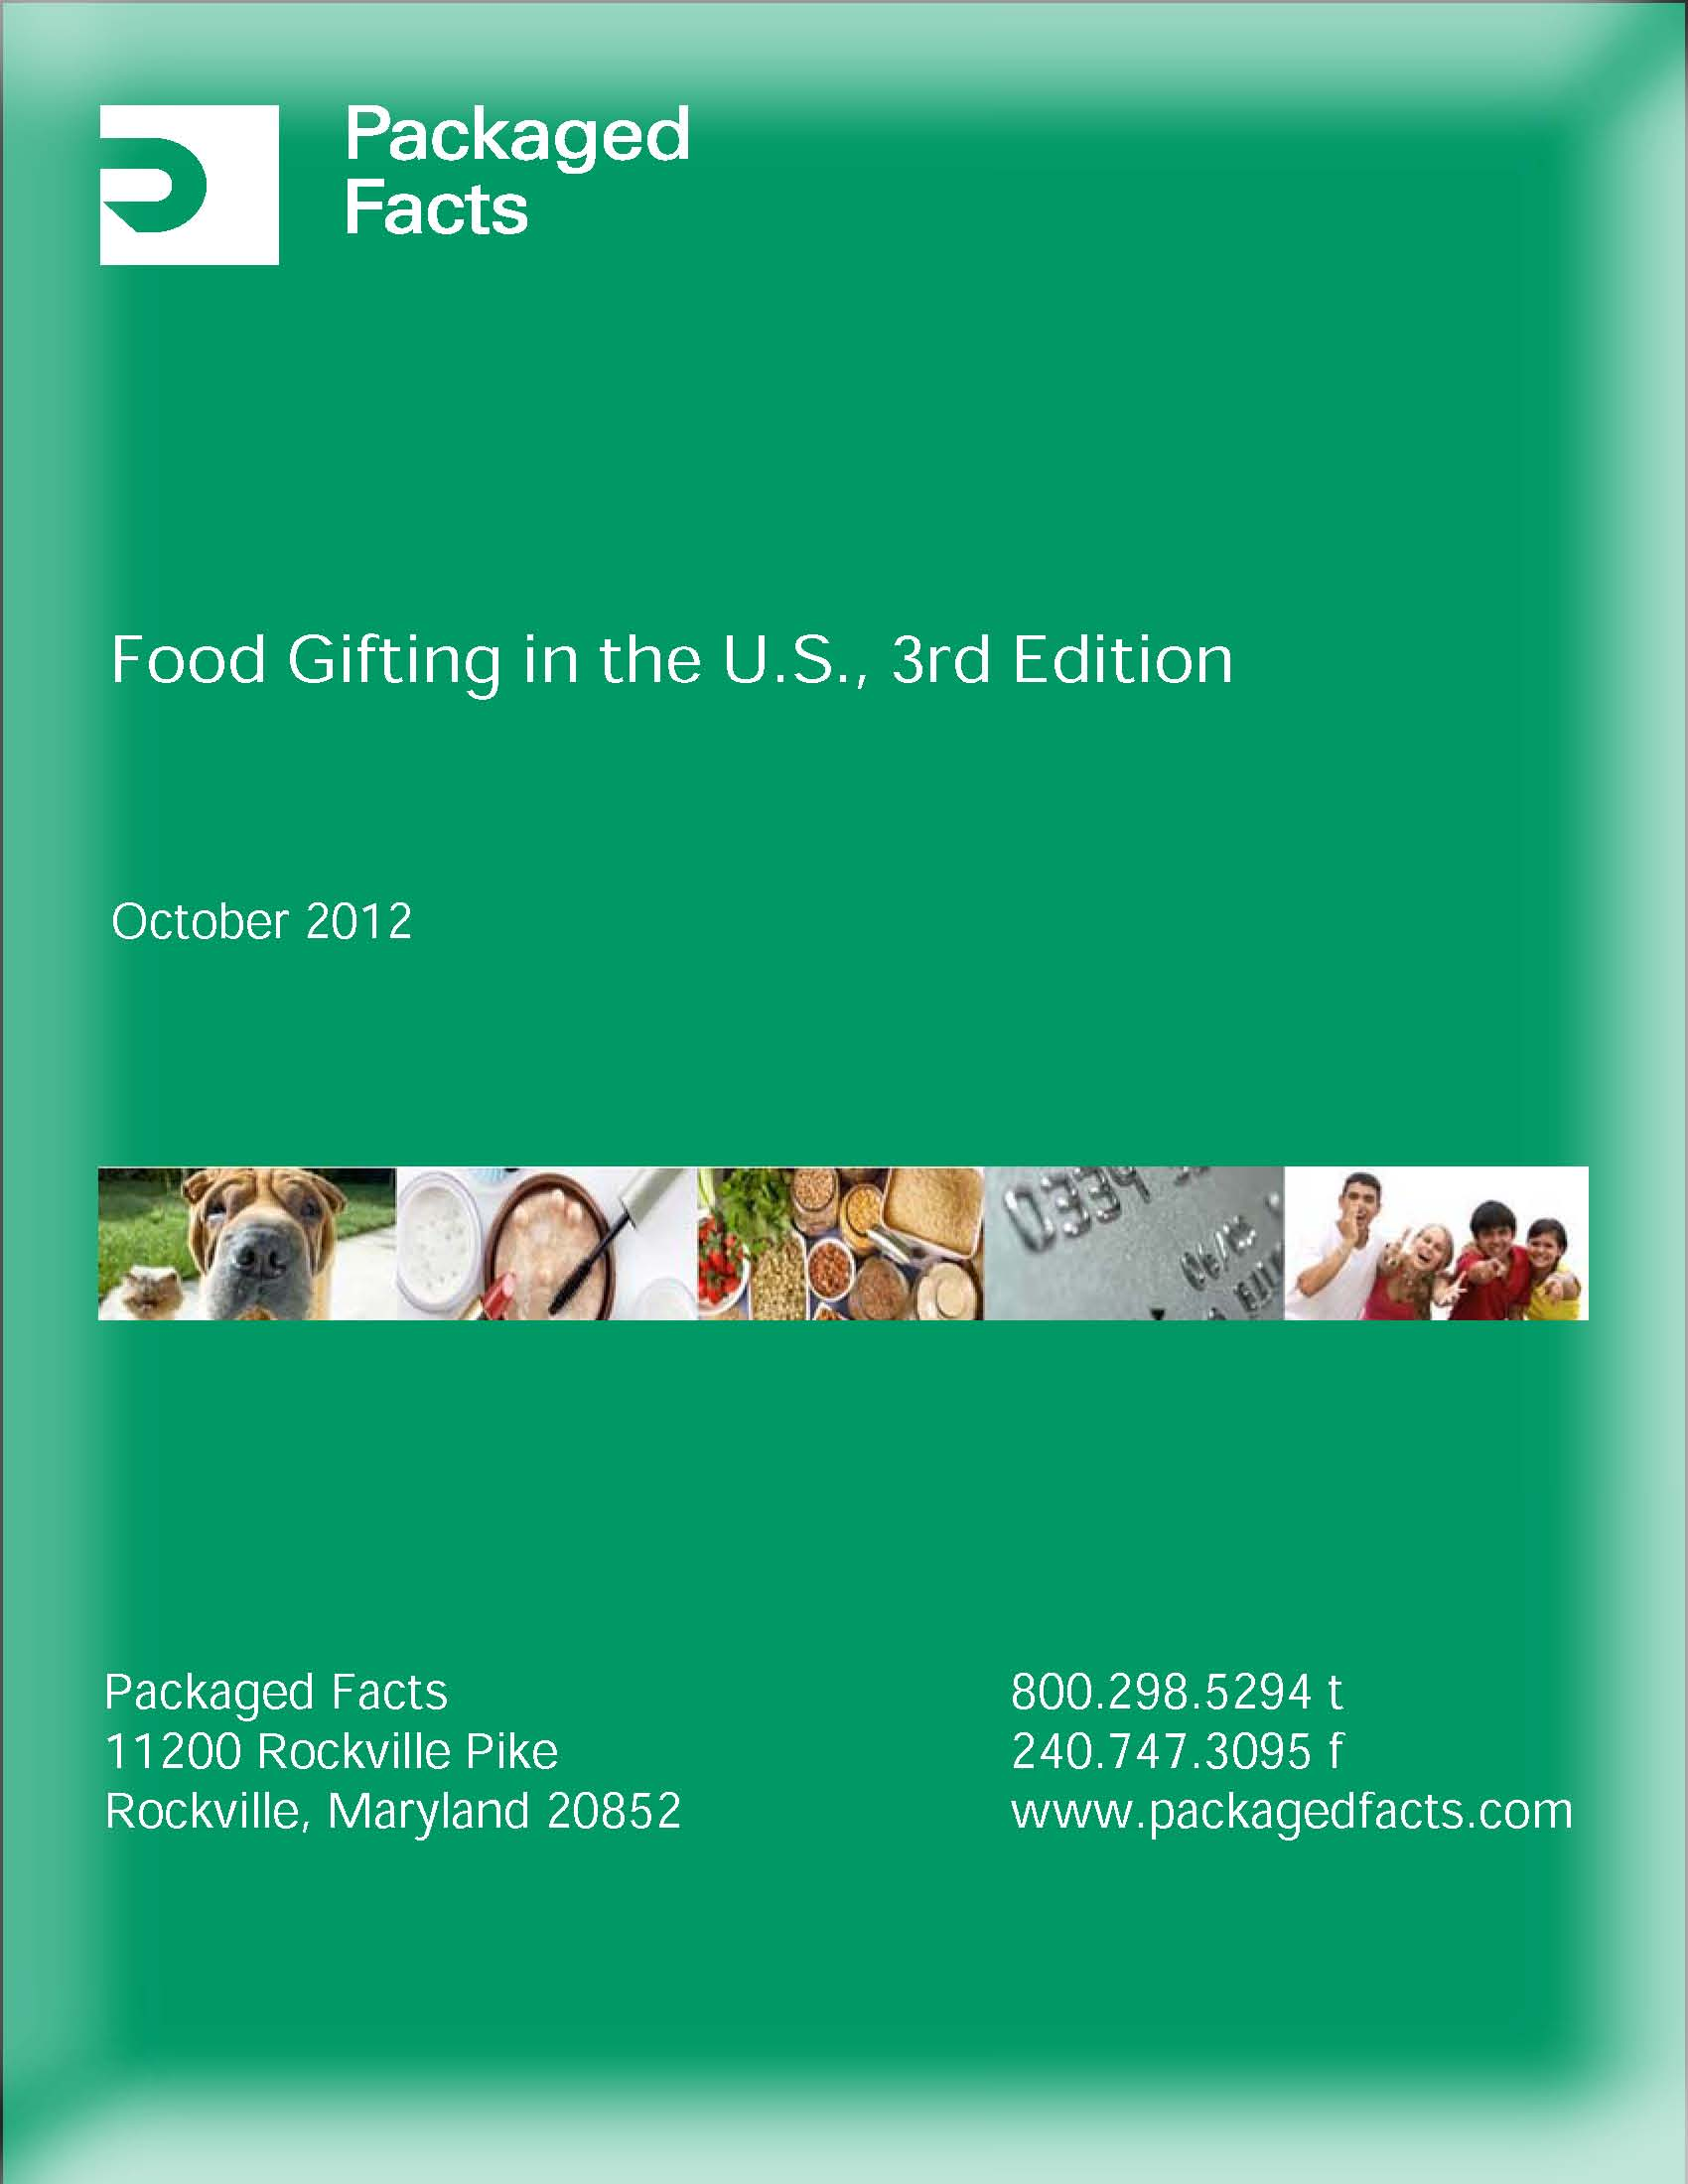 Consumer Food Gifting in the U.S., 3rd Edition